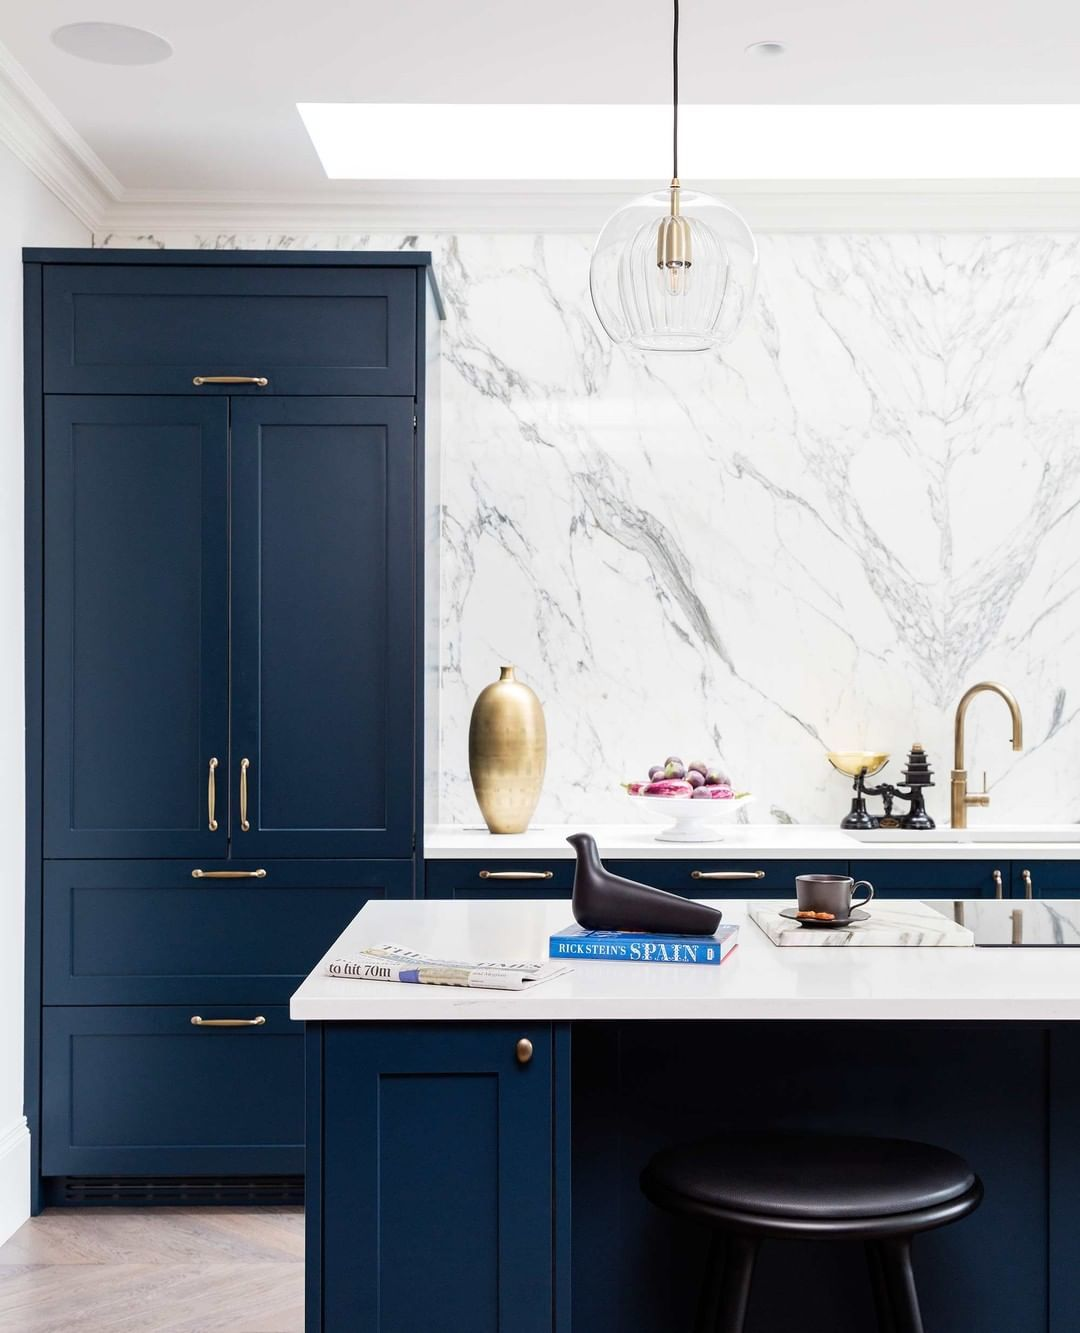 Hux London On Instagram The Most Successful Bespoke Kitchens Are A Harmonious Blend Of Form And In 2020 Modern Kitchen Island Design Bespoke Kitchens Kitchen Design